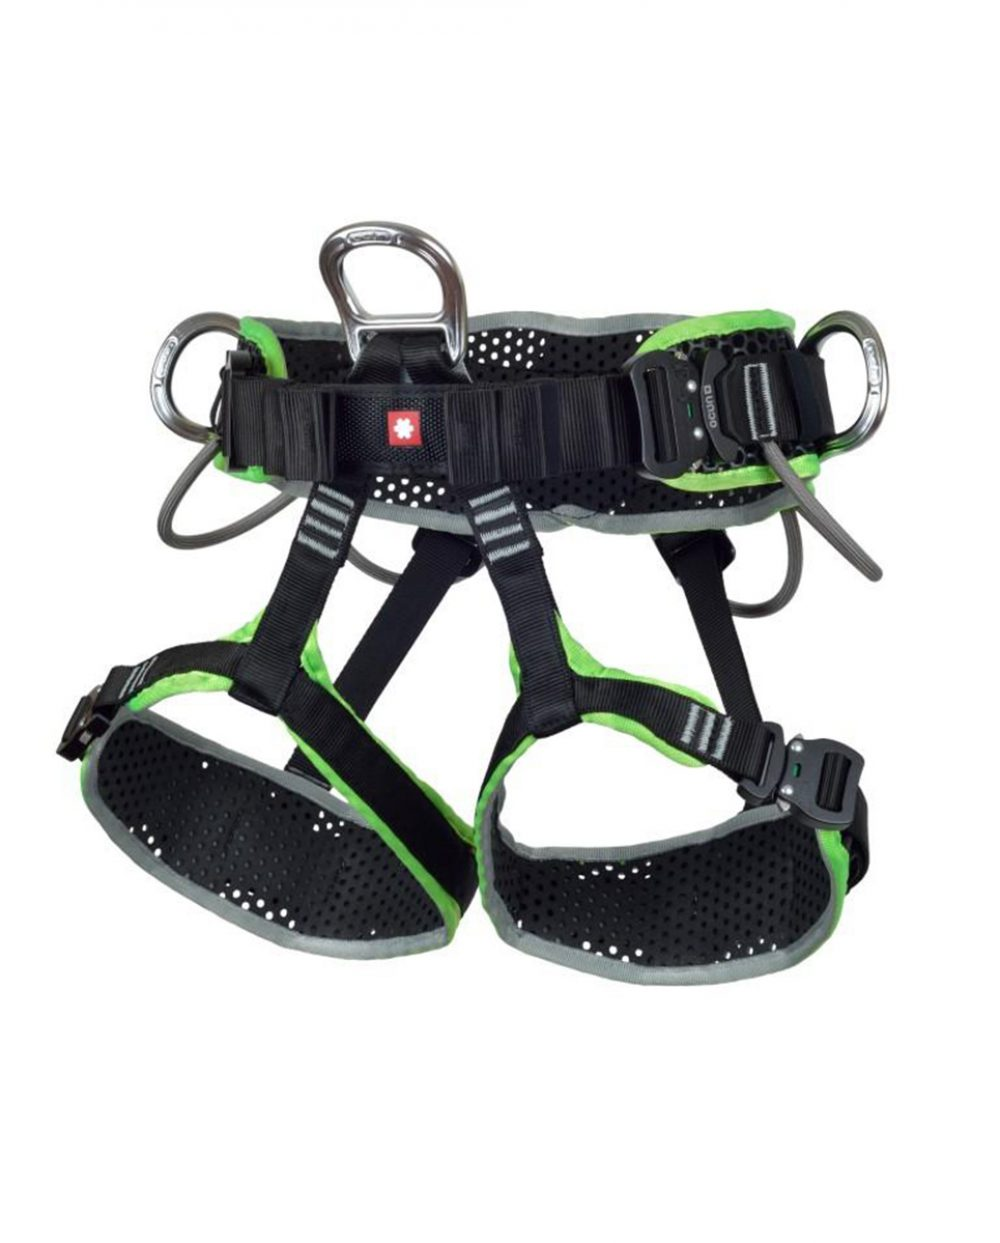 Full body harness for rope access Ocun THOR ACCESS 4Q